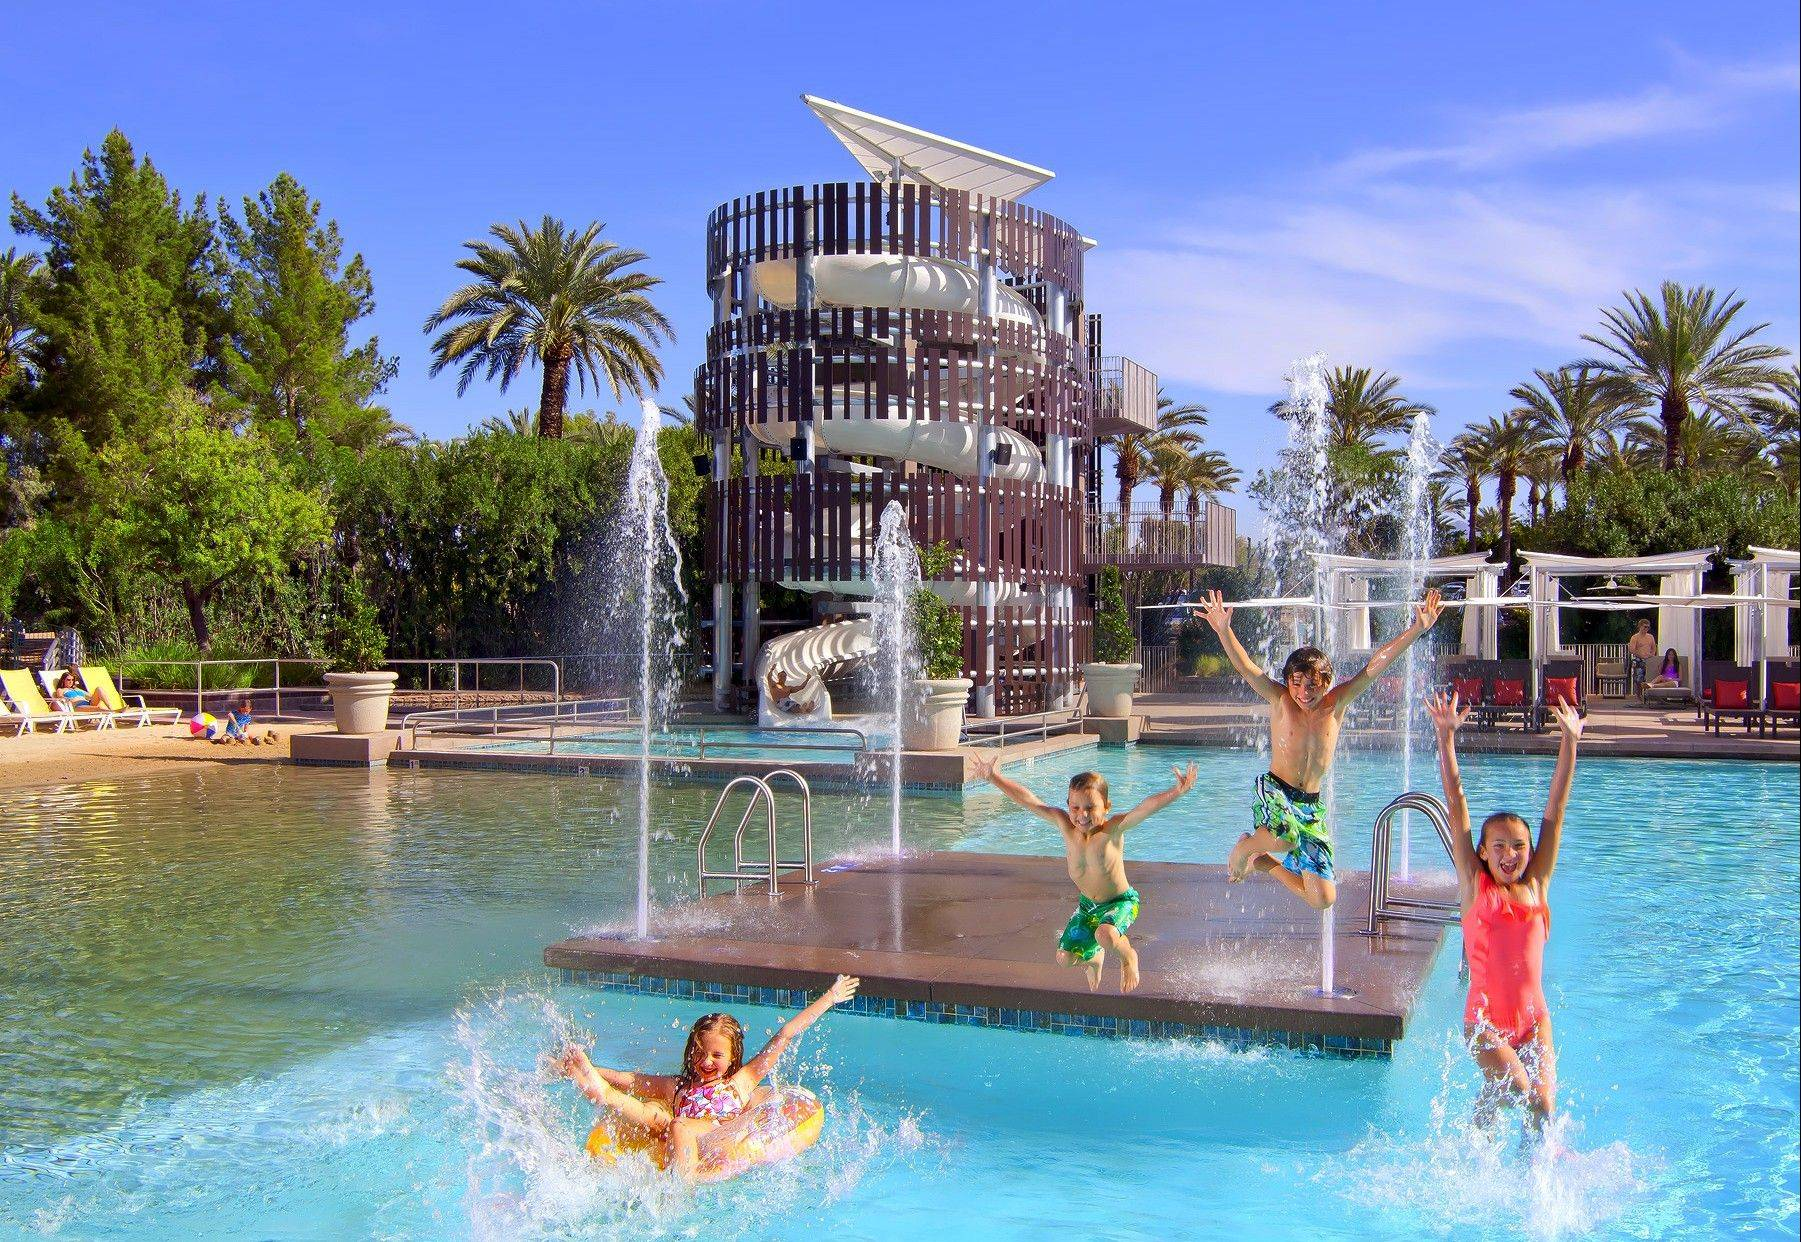 Children enjoy themselves in the pool of the Hyatt Regency Scottsdale Resort & Spa in Scottsdale.